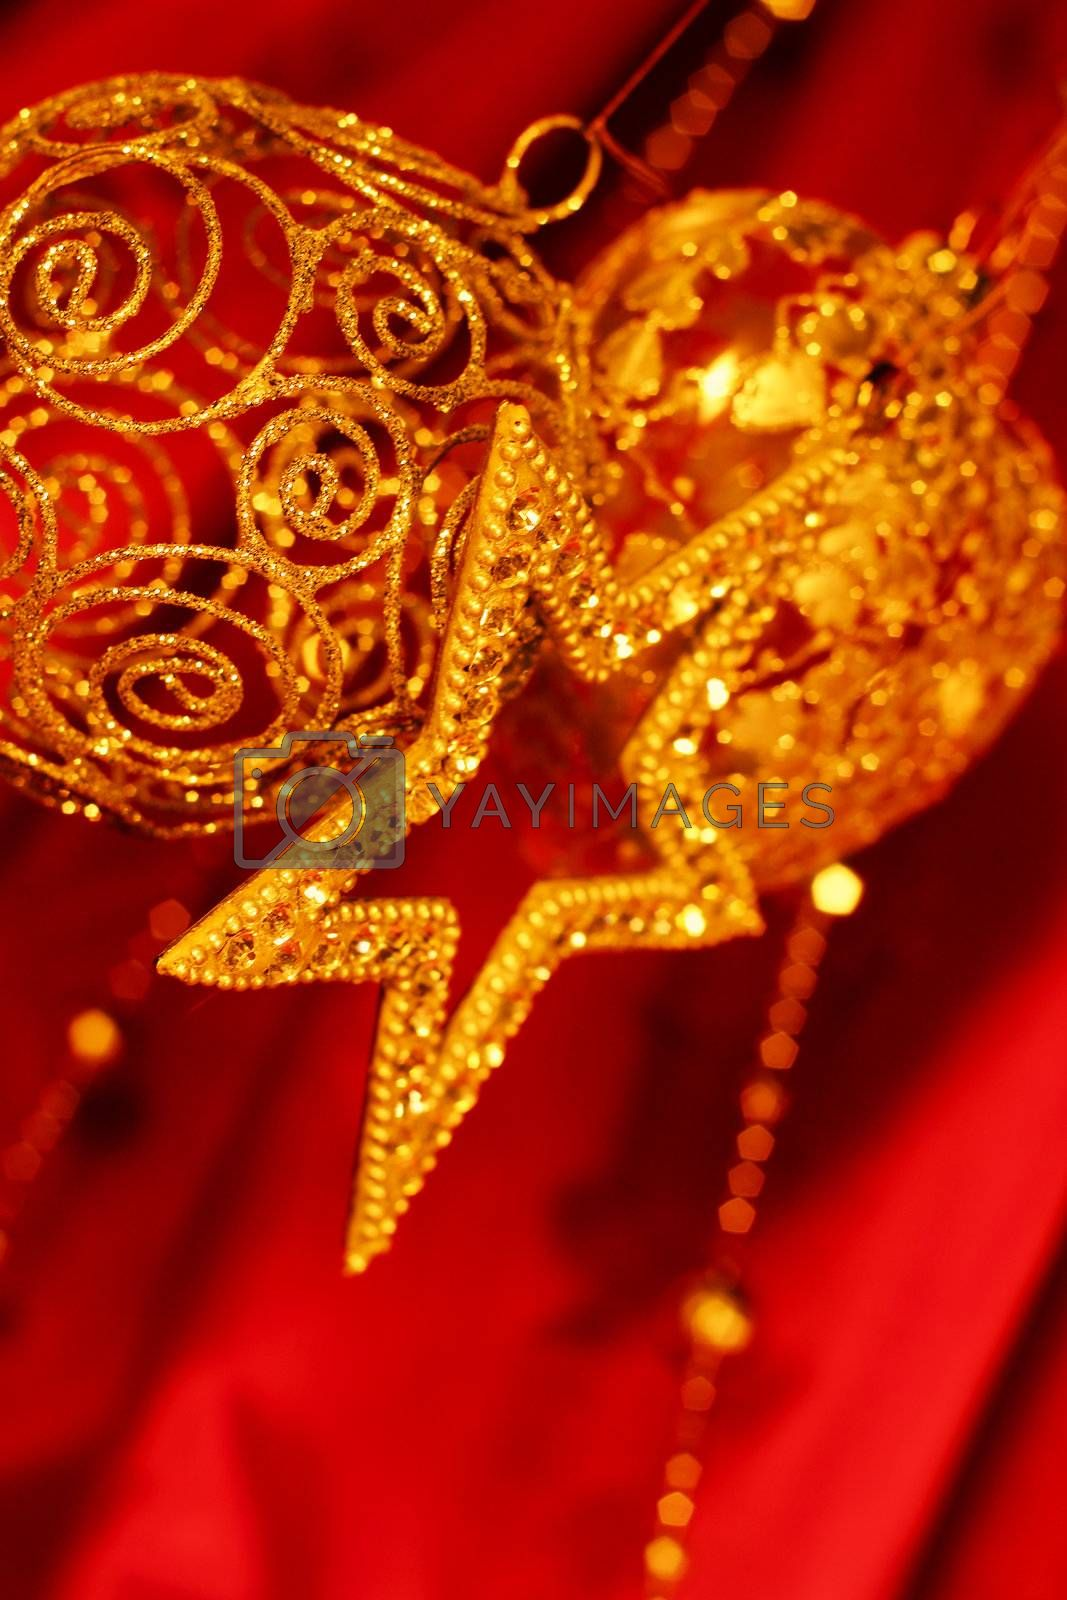 Golden christmas decoration on red fabric background